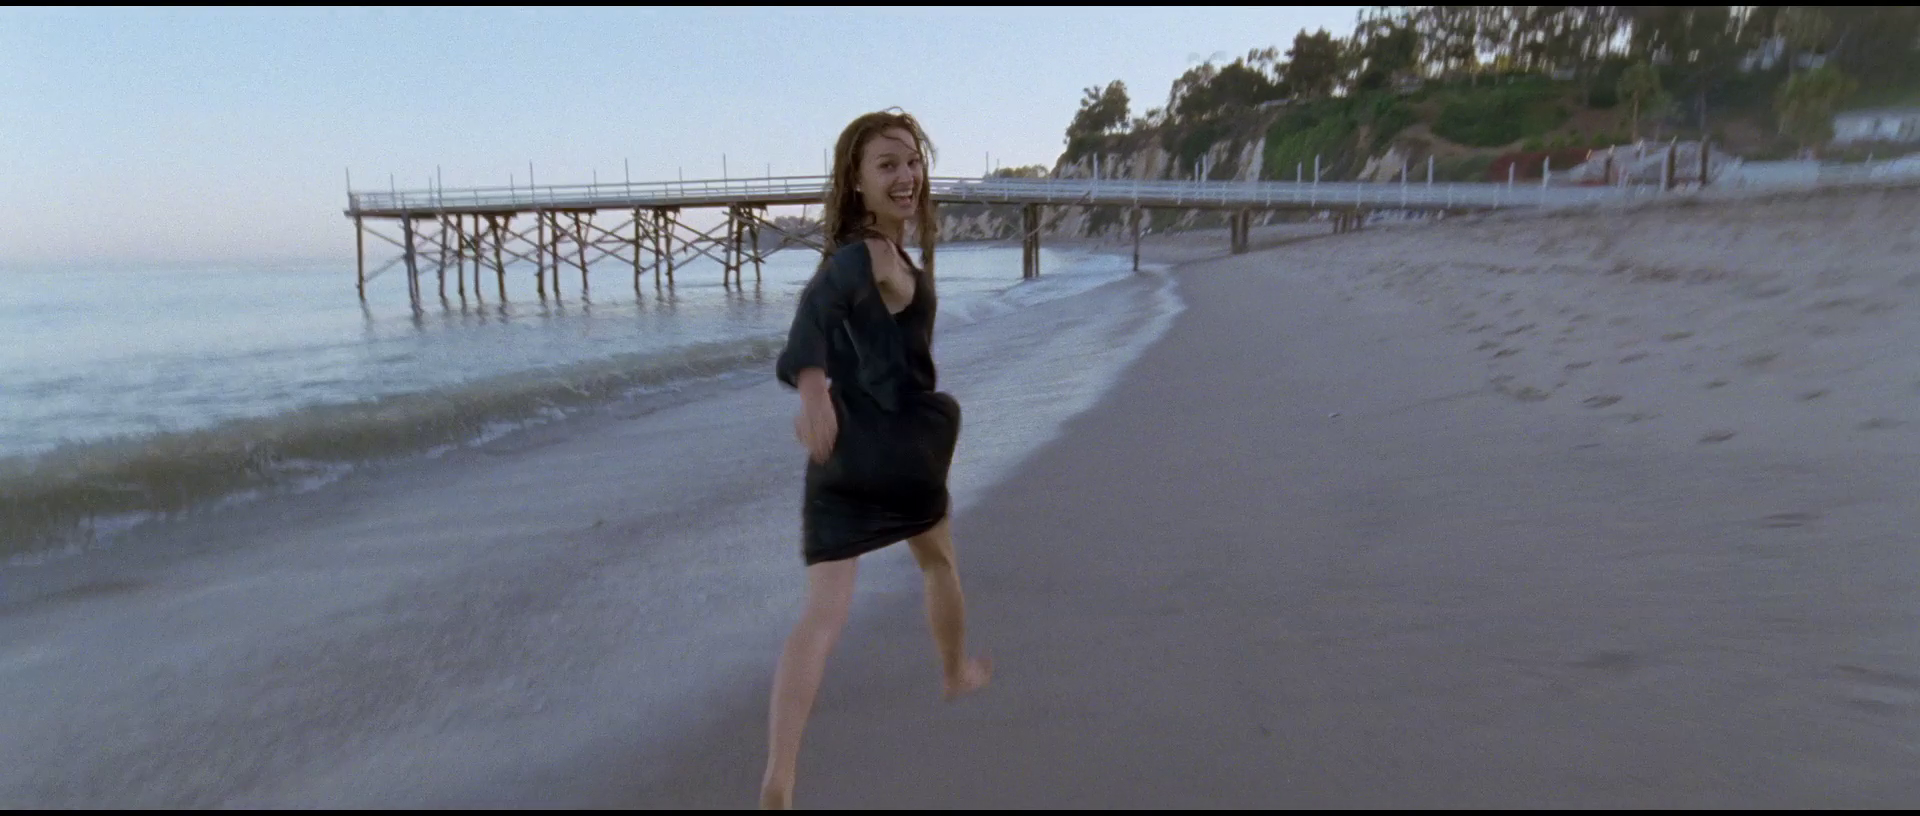 NP in Terrence Malick's Knight of Cups      | Natalie Portman in